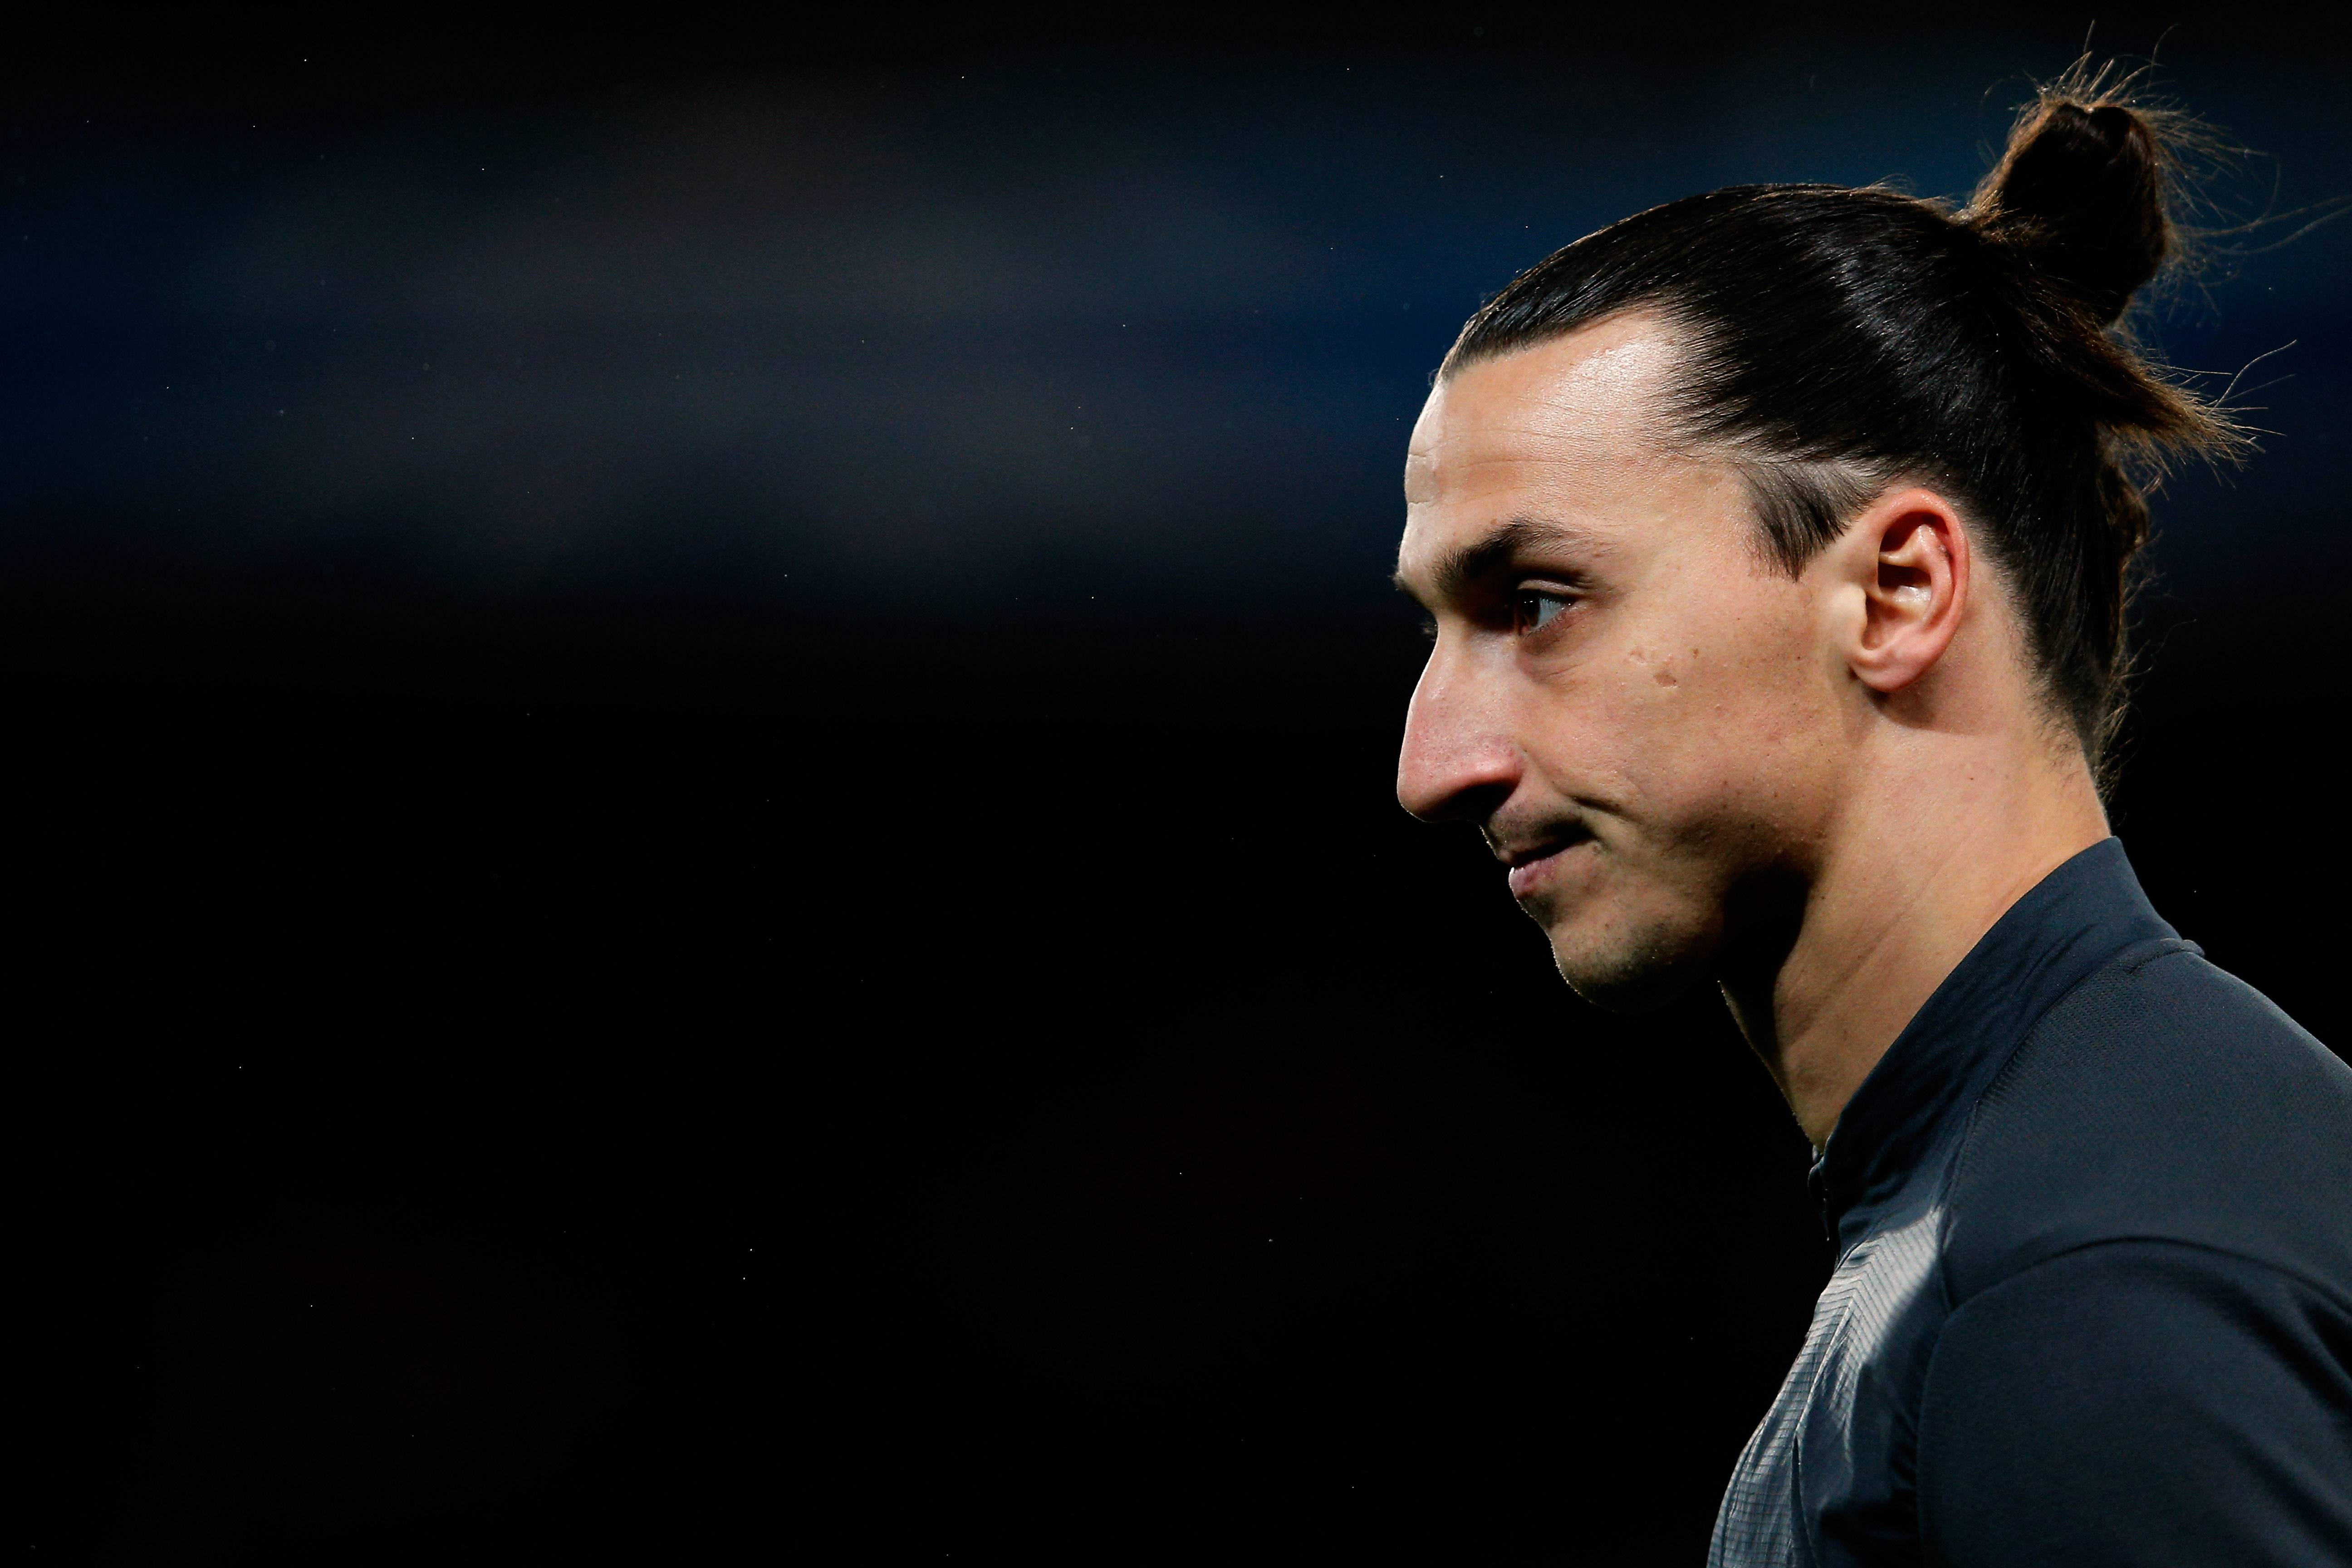 Zlatan Ibrahimovic Wallpapers Wallpaper Cave